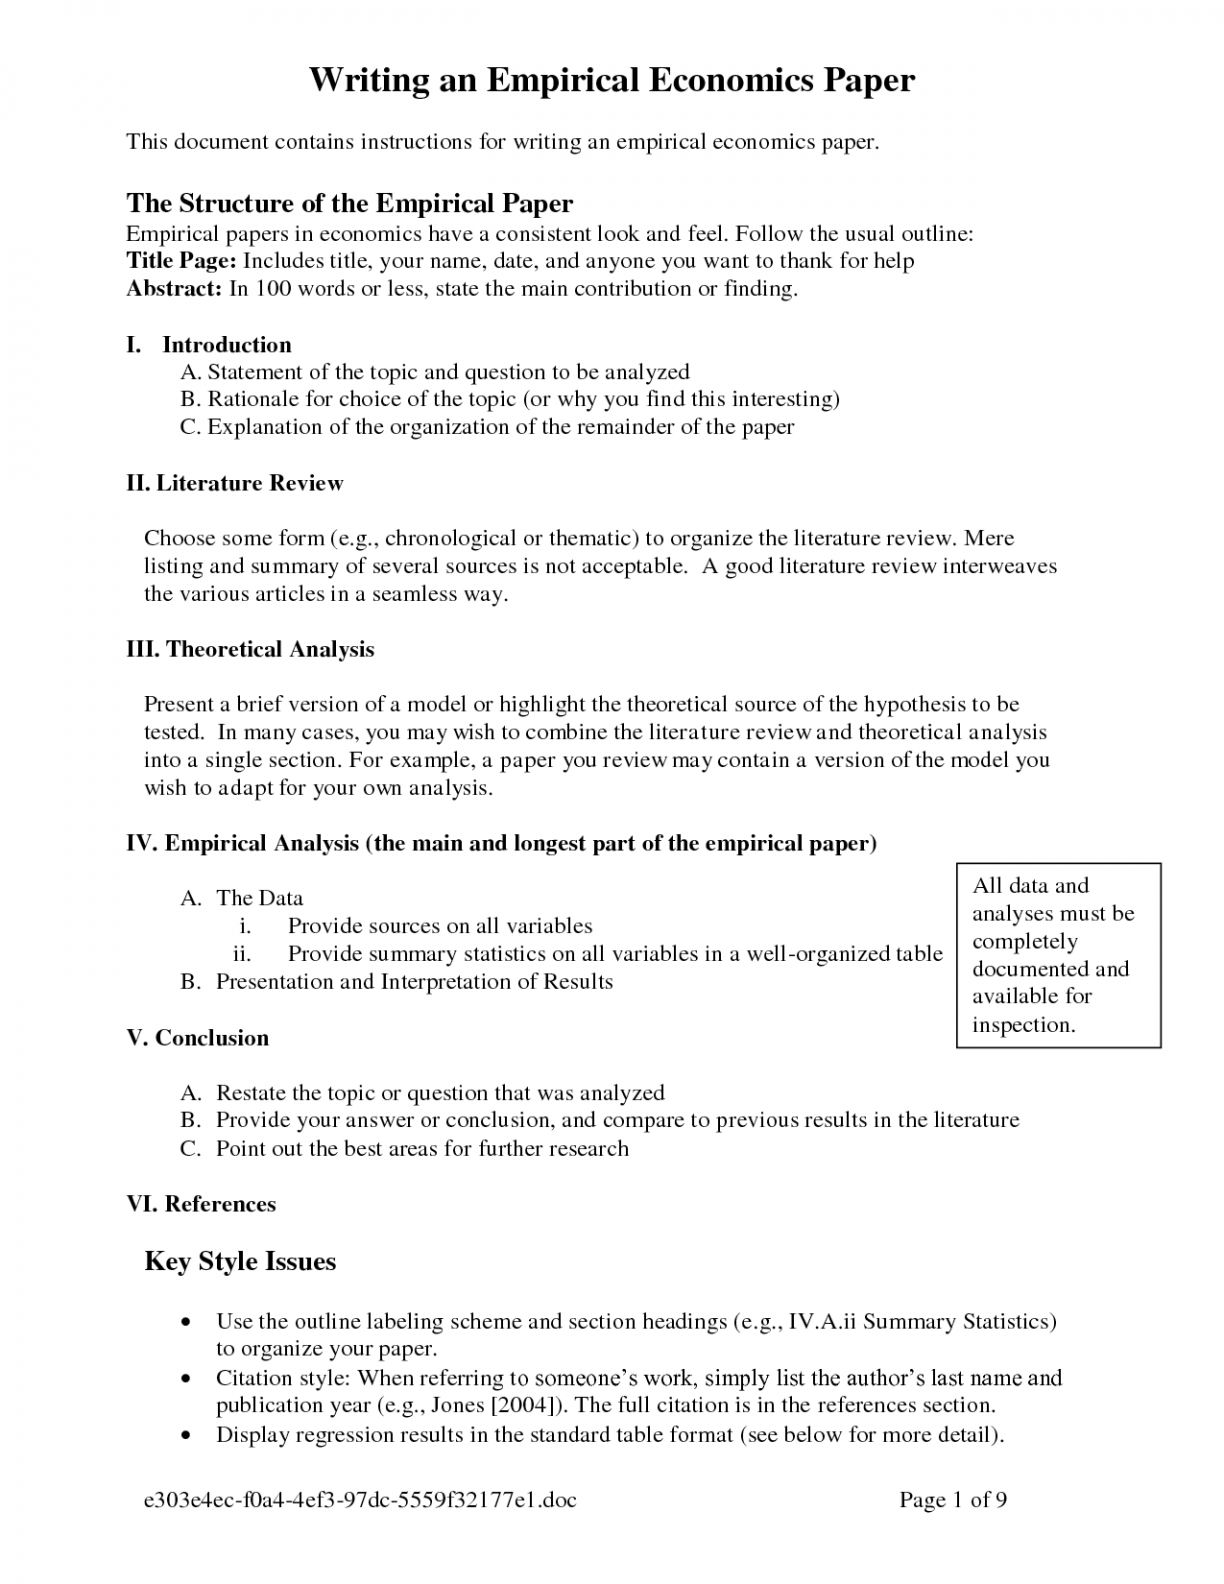 Crime prevention order essay papers